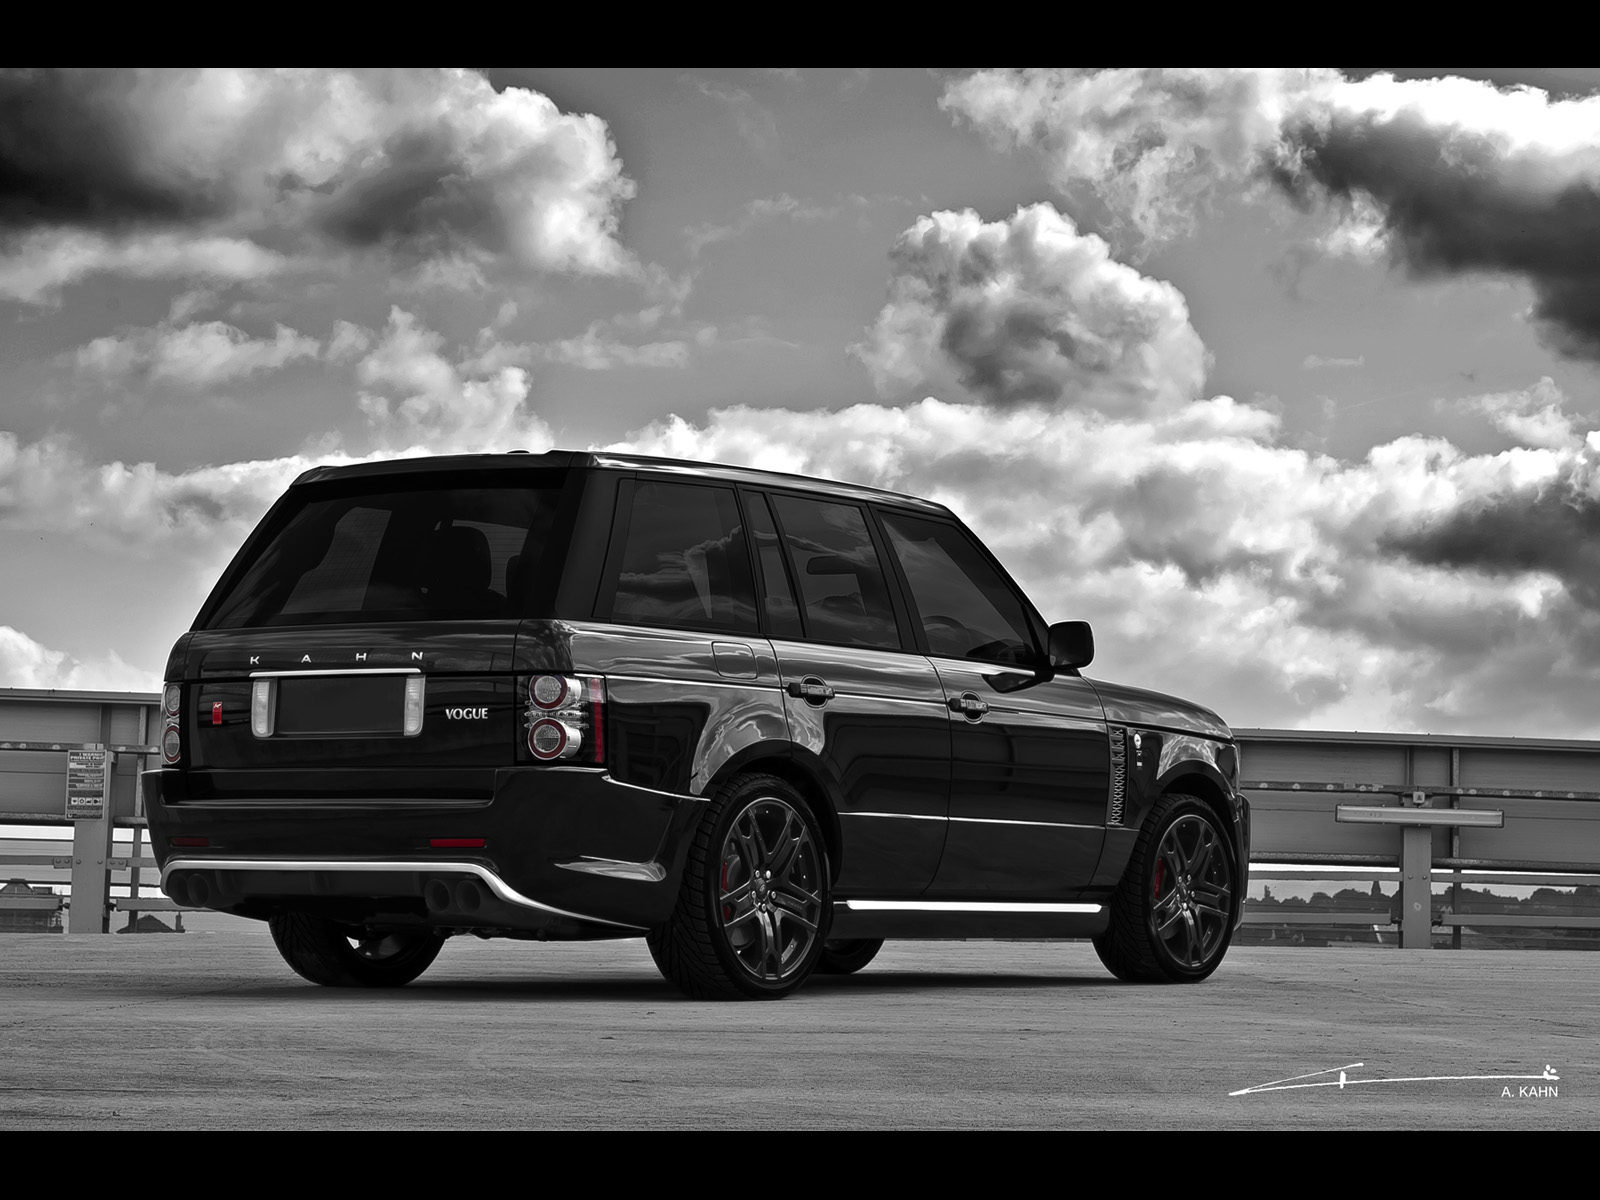 1600x1200 - Range Rover Wallpapers 21